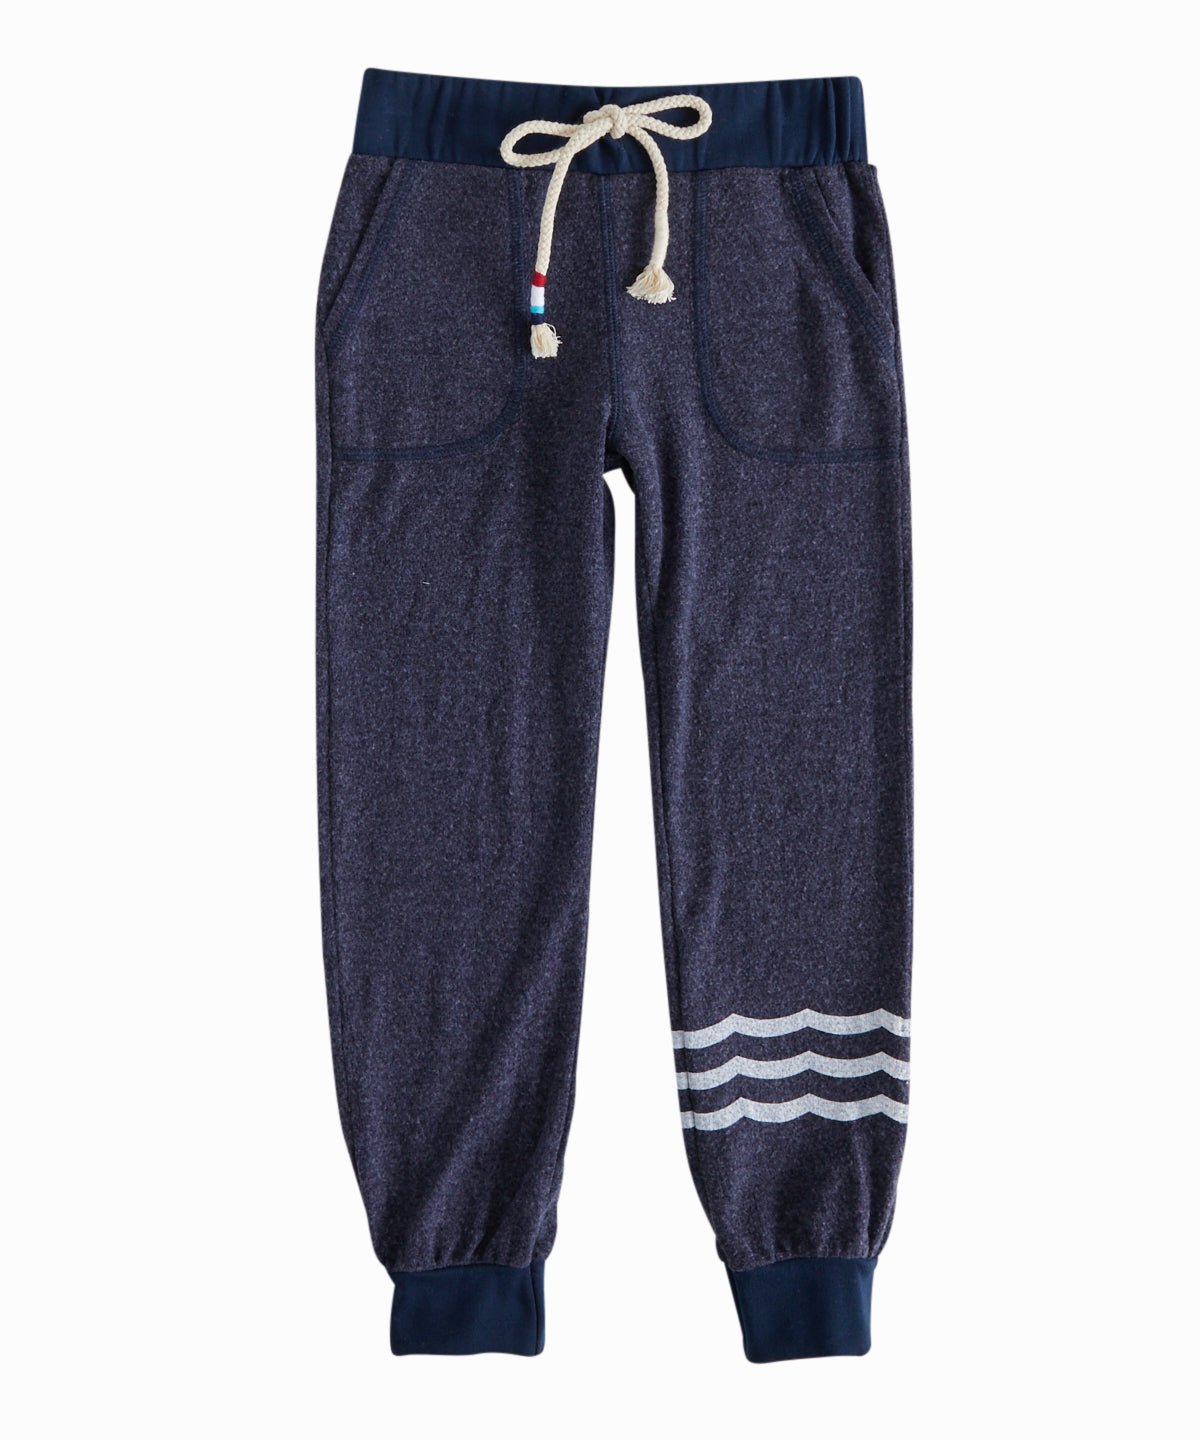 Hacci Waves Navy Jogger Sweatpants